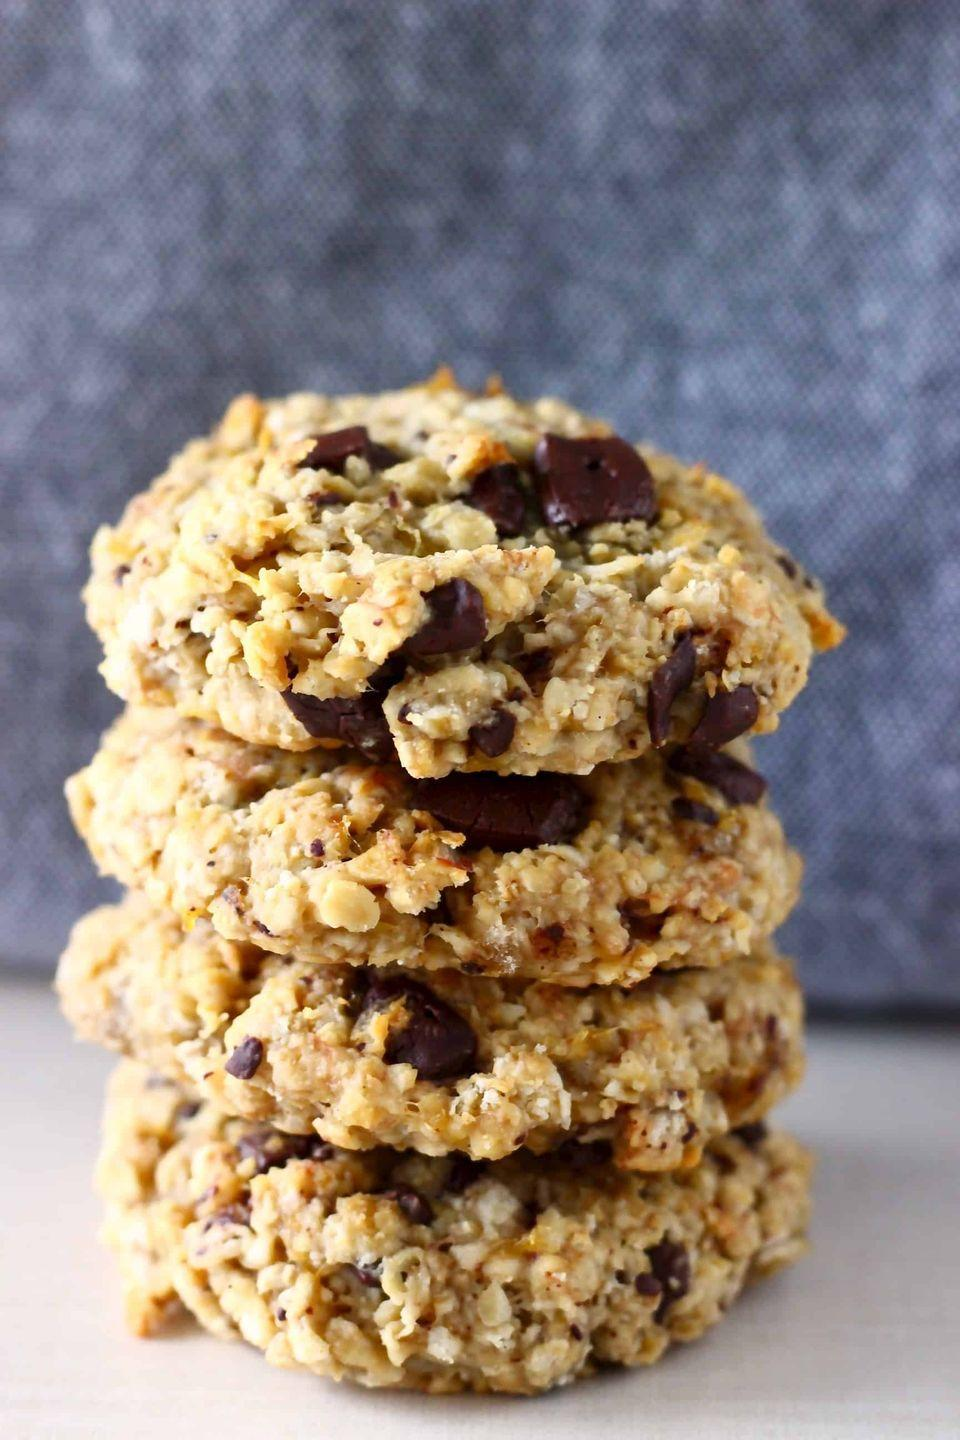 """<p>These moist, soft, chewy cookies get their sweetness from bananas, a bit of maple, and vanilla.</p><p><a class=""""link rapid-noclick-resp"""" href=""""https://www.rhiansrecipes.com/banana-cookies/"""" rel=""""nofollow noopener"""" target=""""_blank"""" data-ylk=""""slk:GET THE RECIPE"""">GET THE RECIPE</a><br></p><p><em>Per serving: 148 calories, 6 g fat (3 g saturated), 19 g carbs, 9 mg sodium, 2 g fiber, 6 g sugar, 3 g protein</em><br></p>"""